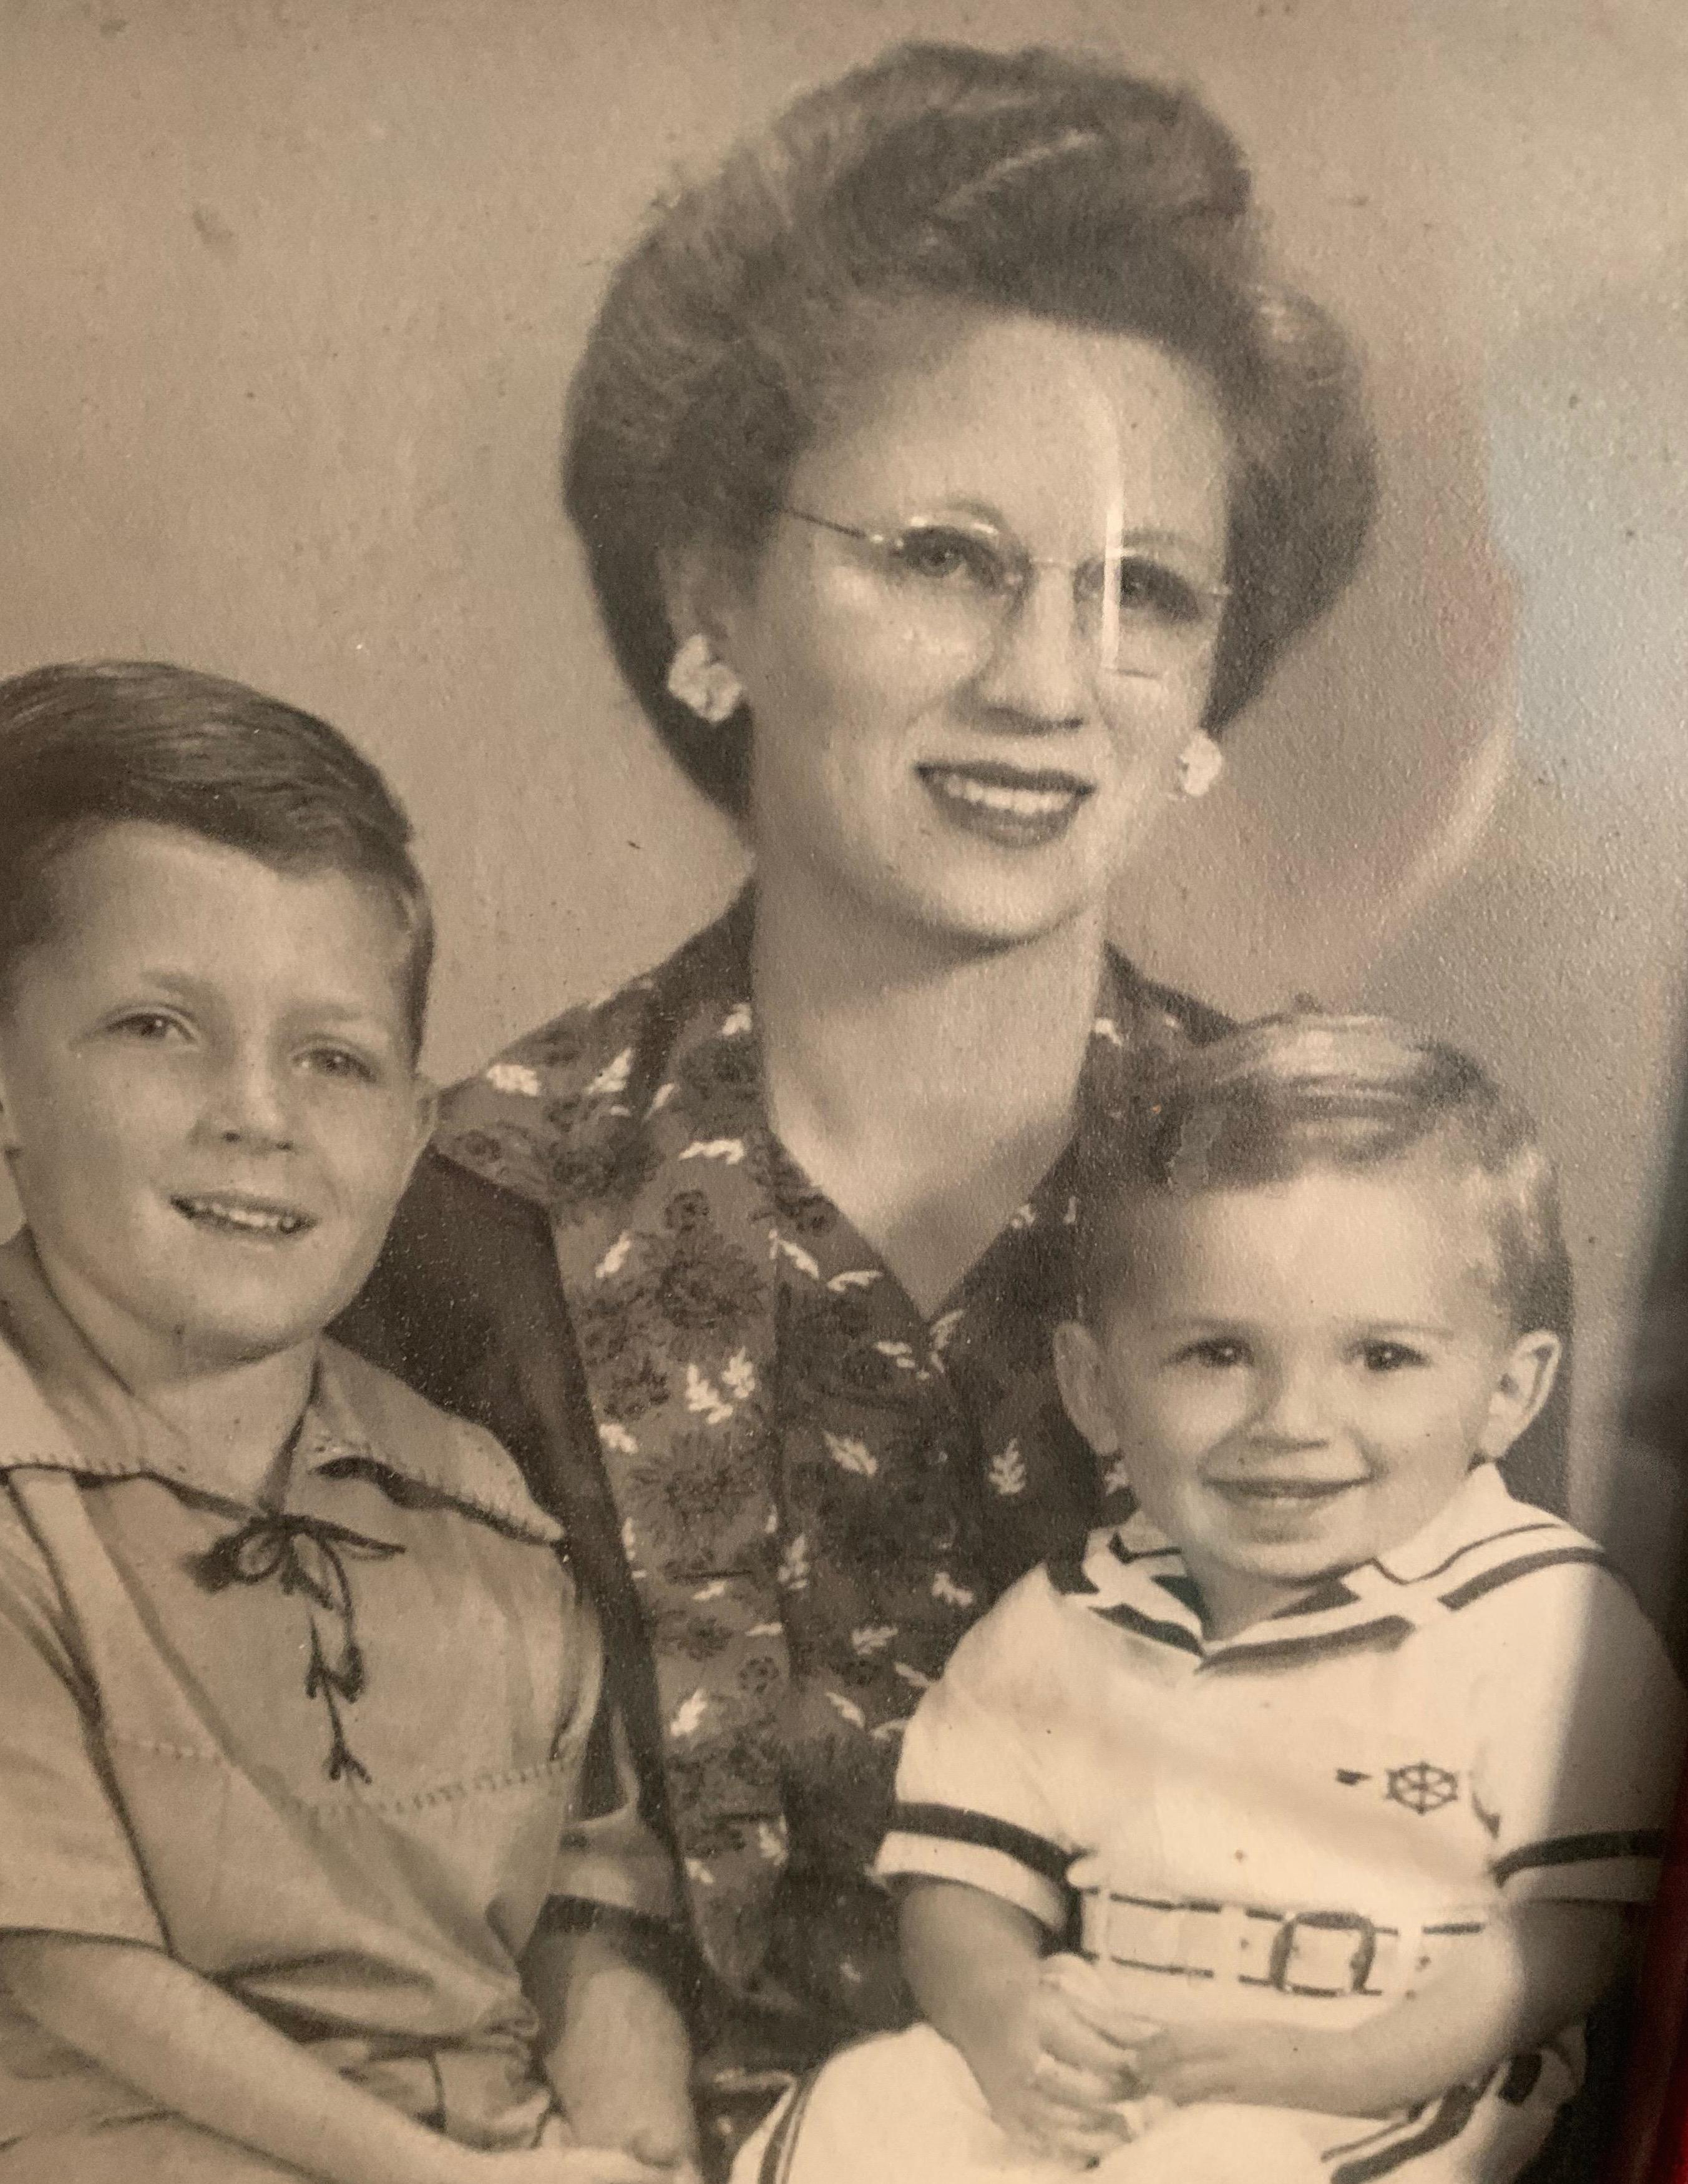 Alan and Ron with their mother Helen in the early 1940s. Photo courtesy of Ron Cohen.